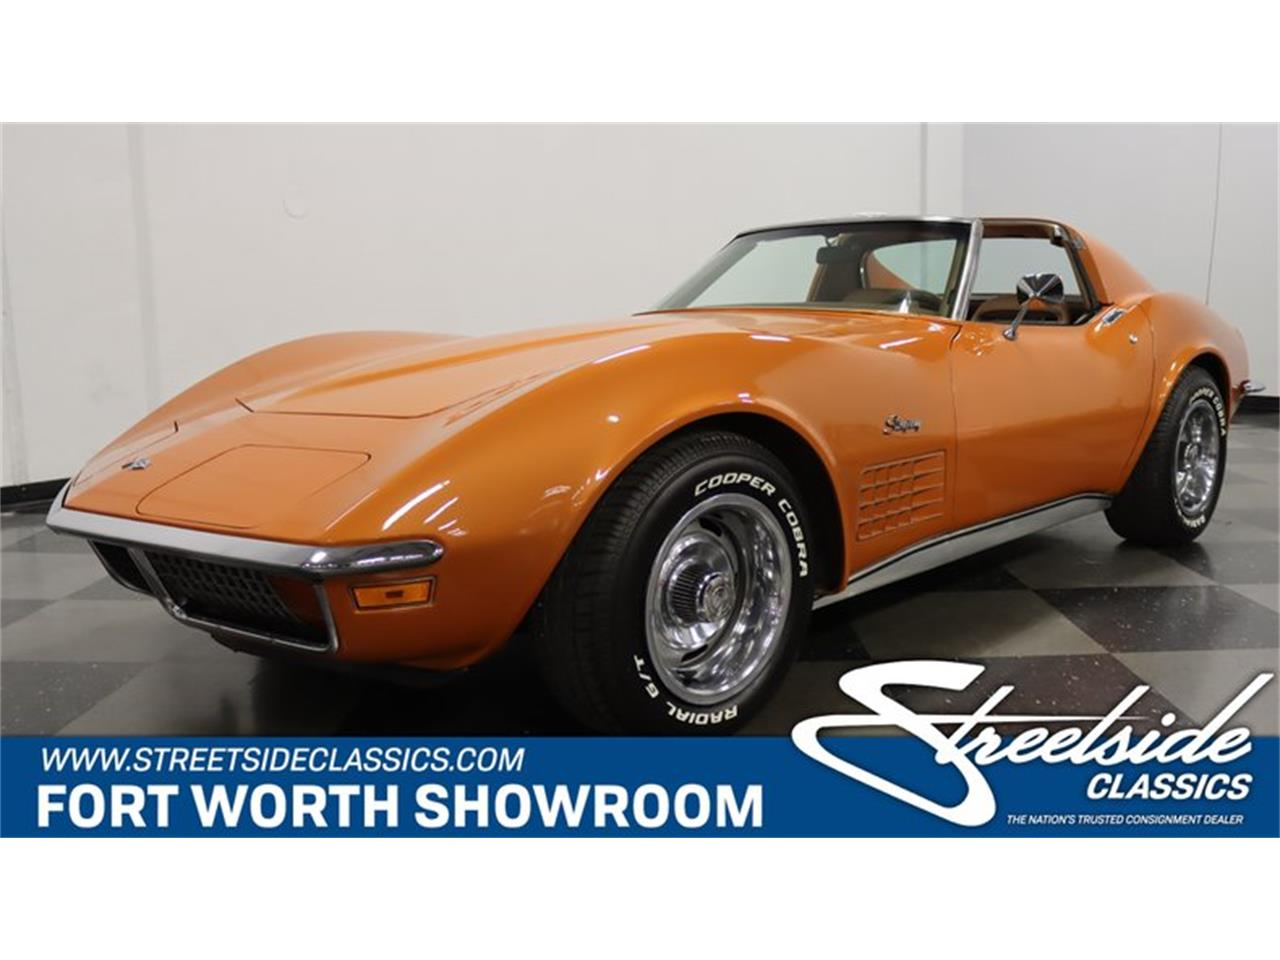 for sale 1972 chevrolet corvette in ft worth, texas cars - fort worth, tx at geebo